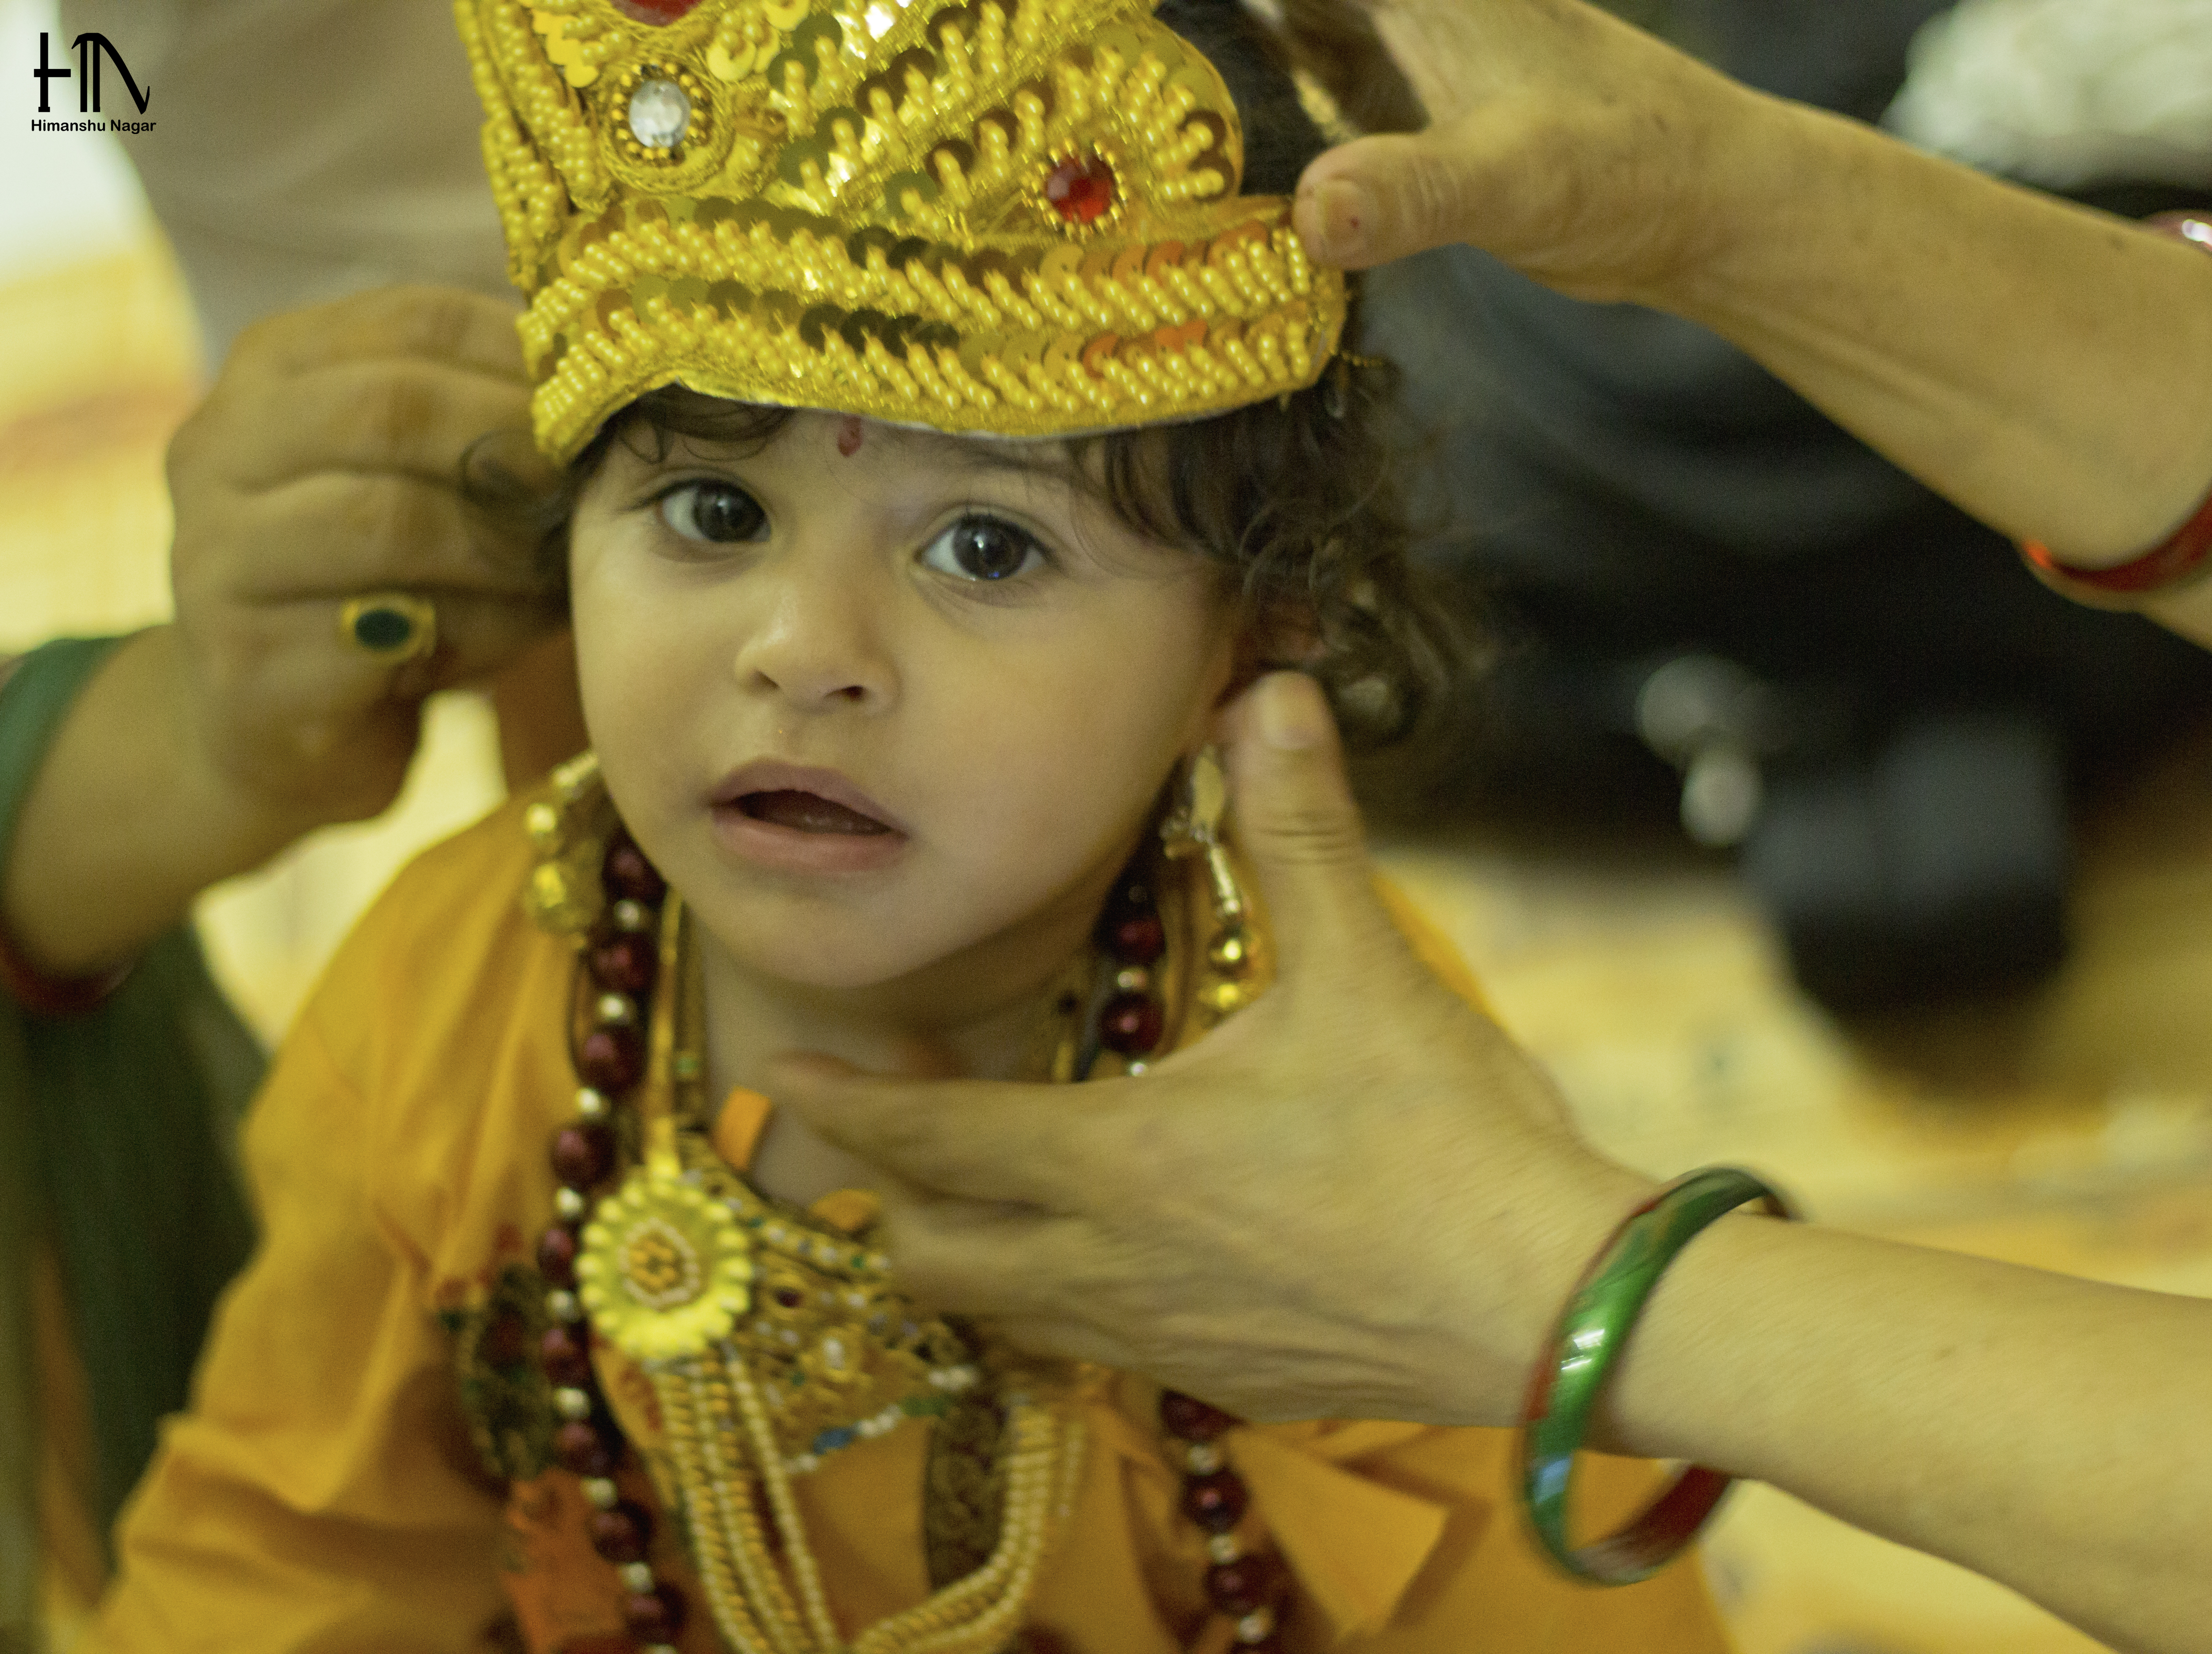 File:A Hindu Baby Being Dressed Up As Krishna For The